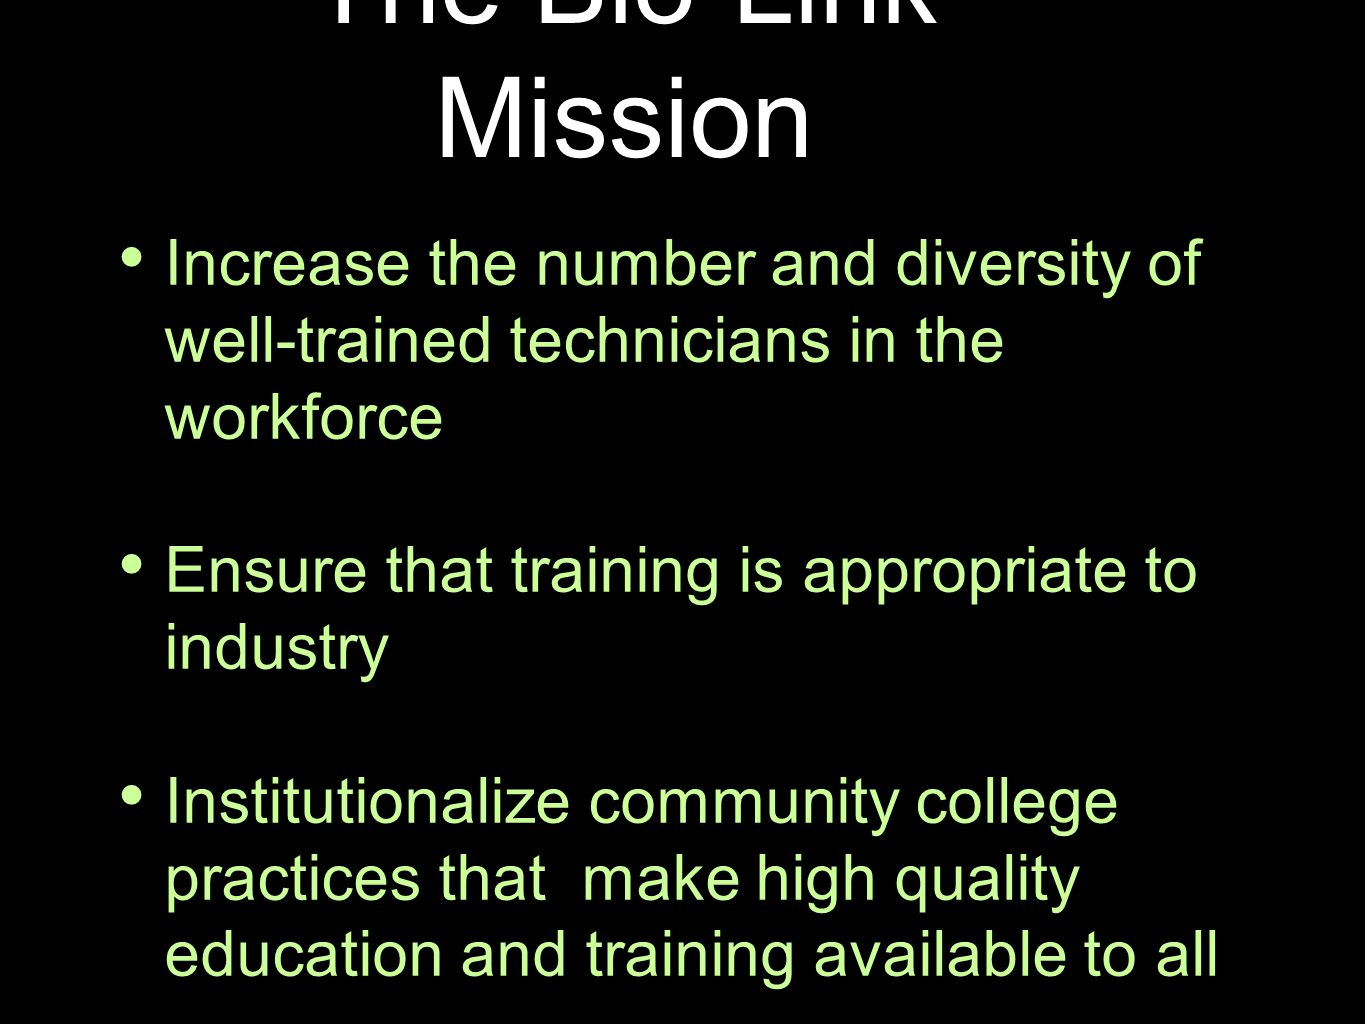 The Bio-Link Mission Increase the number and diversity of well-trained technicians in the workforce Ensure that training is appropriate to industry Institutionalize community college practices that make high quality education and training available to all